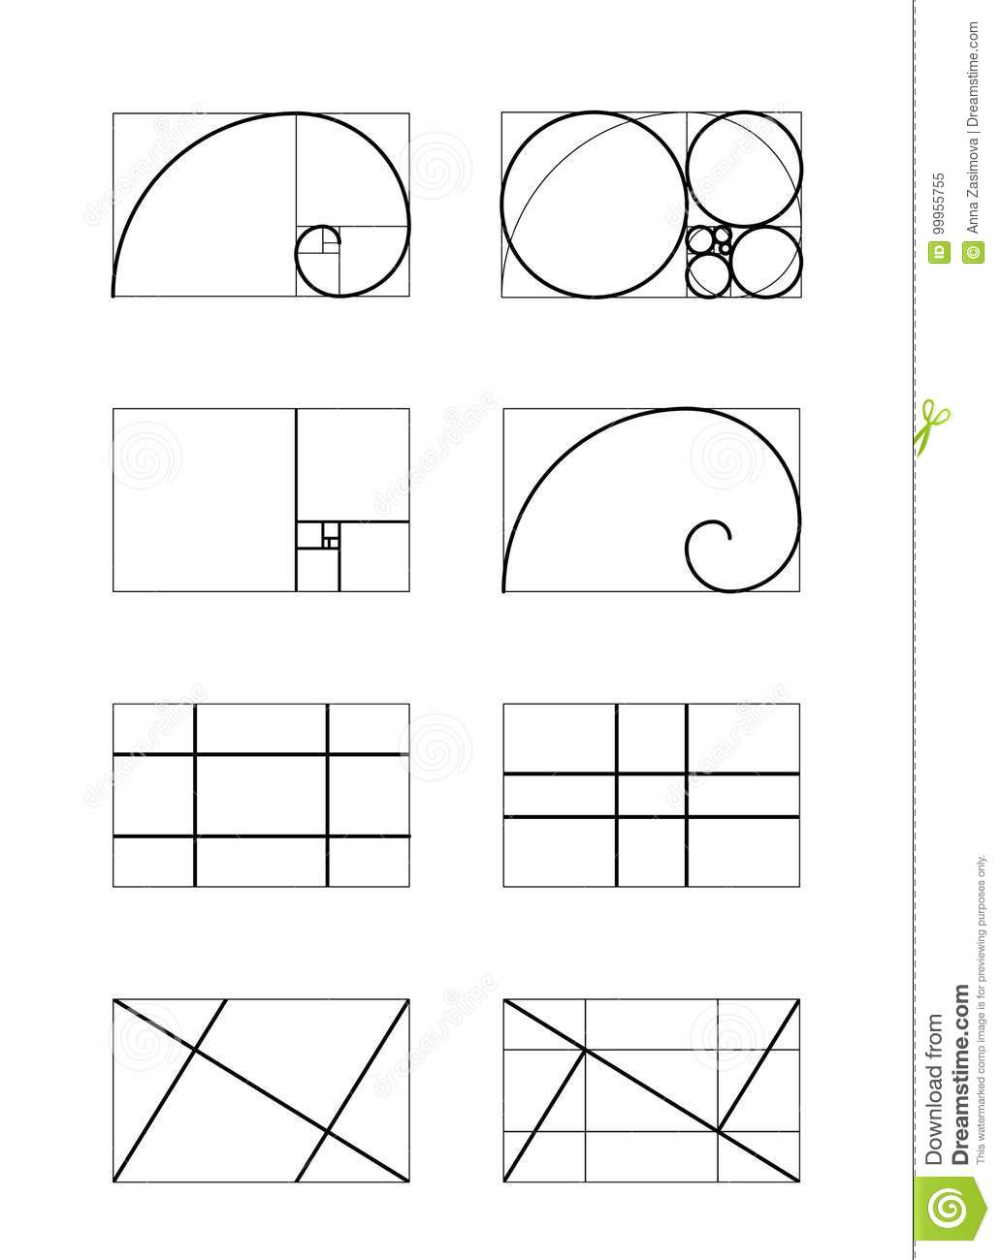 Golden Ratio Cover Template Stock Vector Illustration Of Harmony Dynamic 99955755 Golden Ratio In Design Golden Ratio Golden Ratio Art